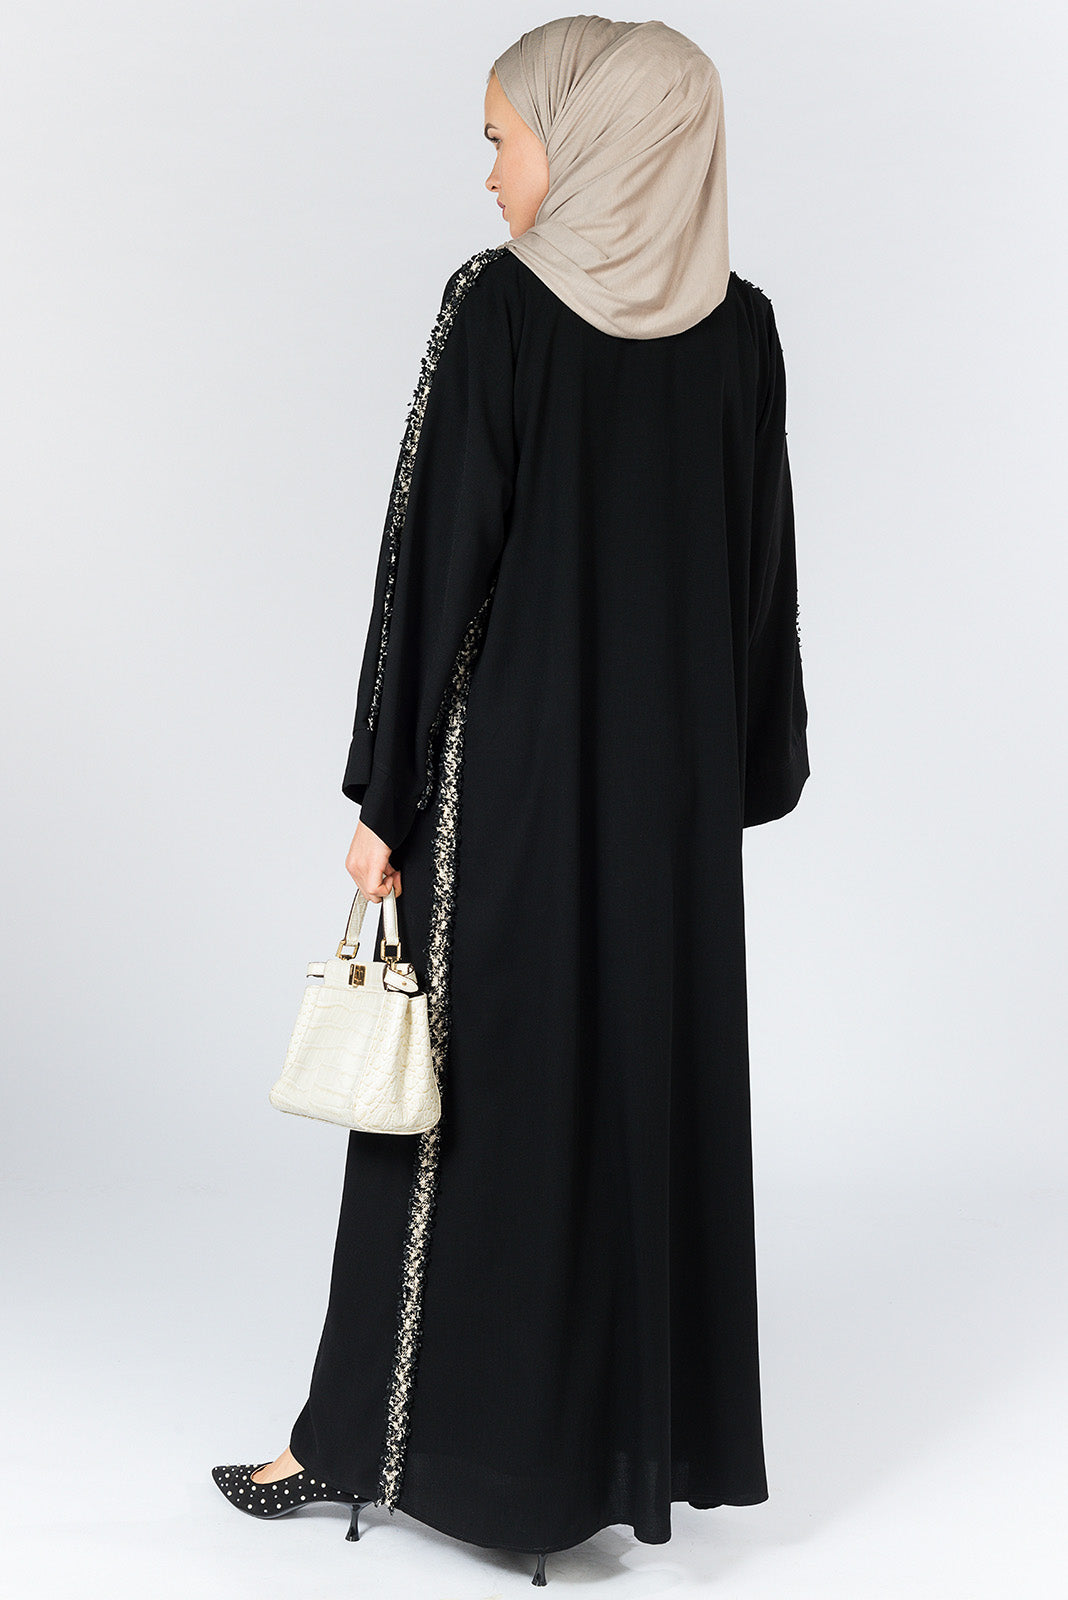 FERADJE London Huda abaya black UK